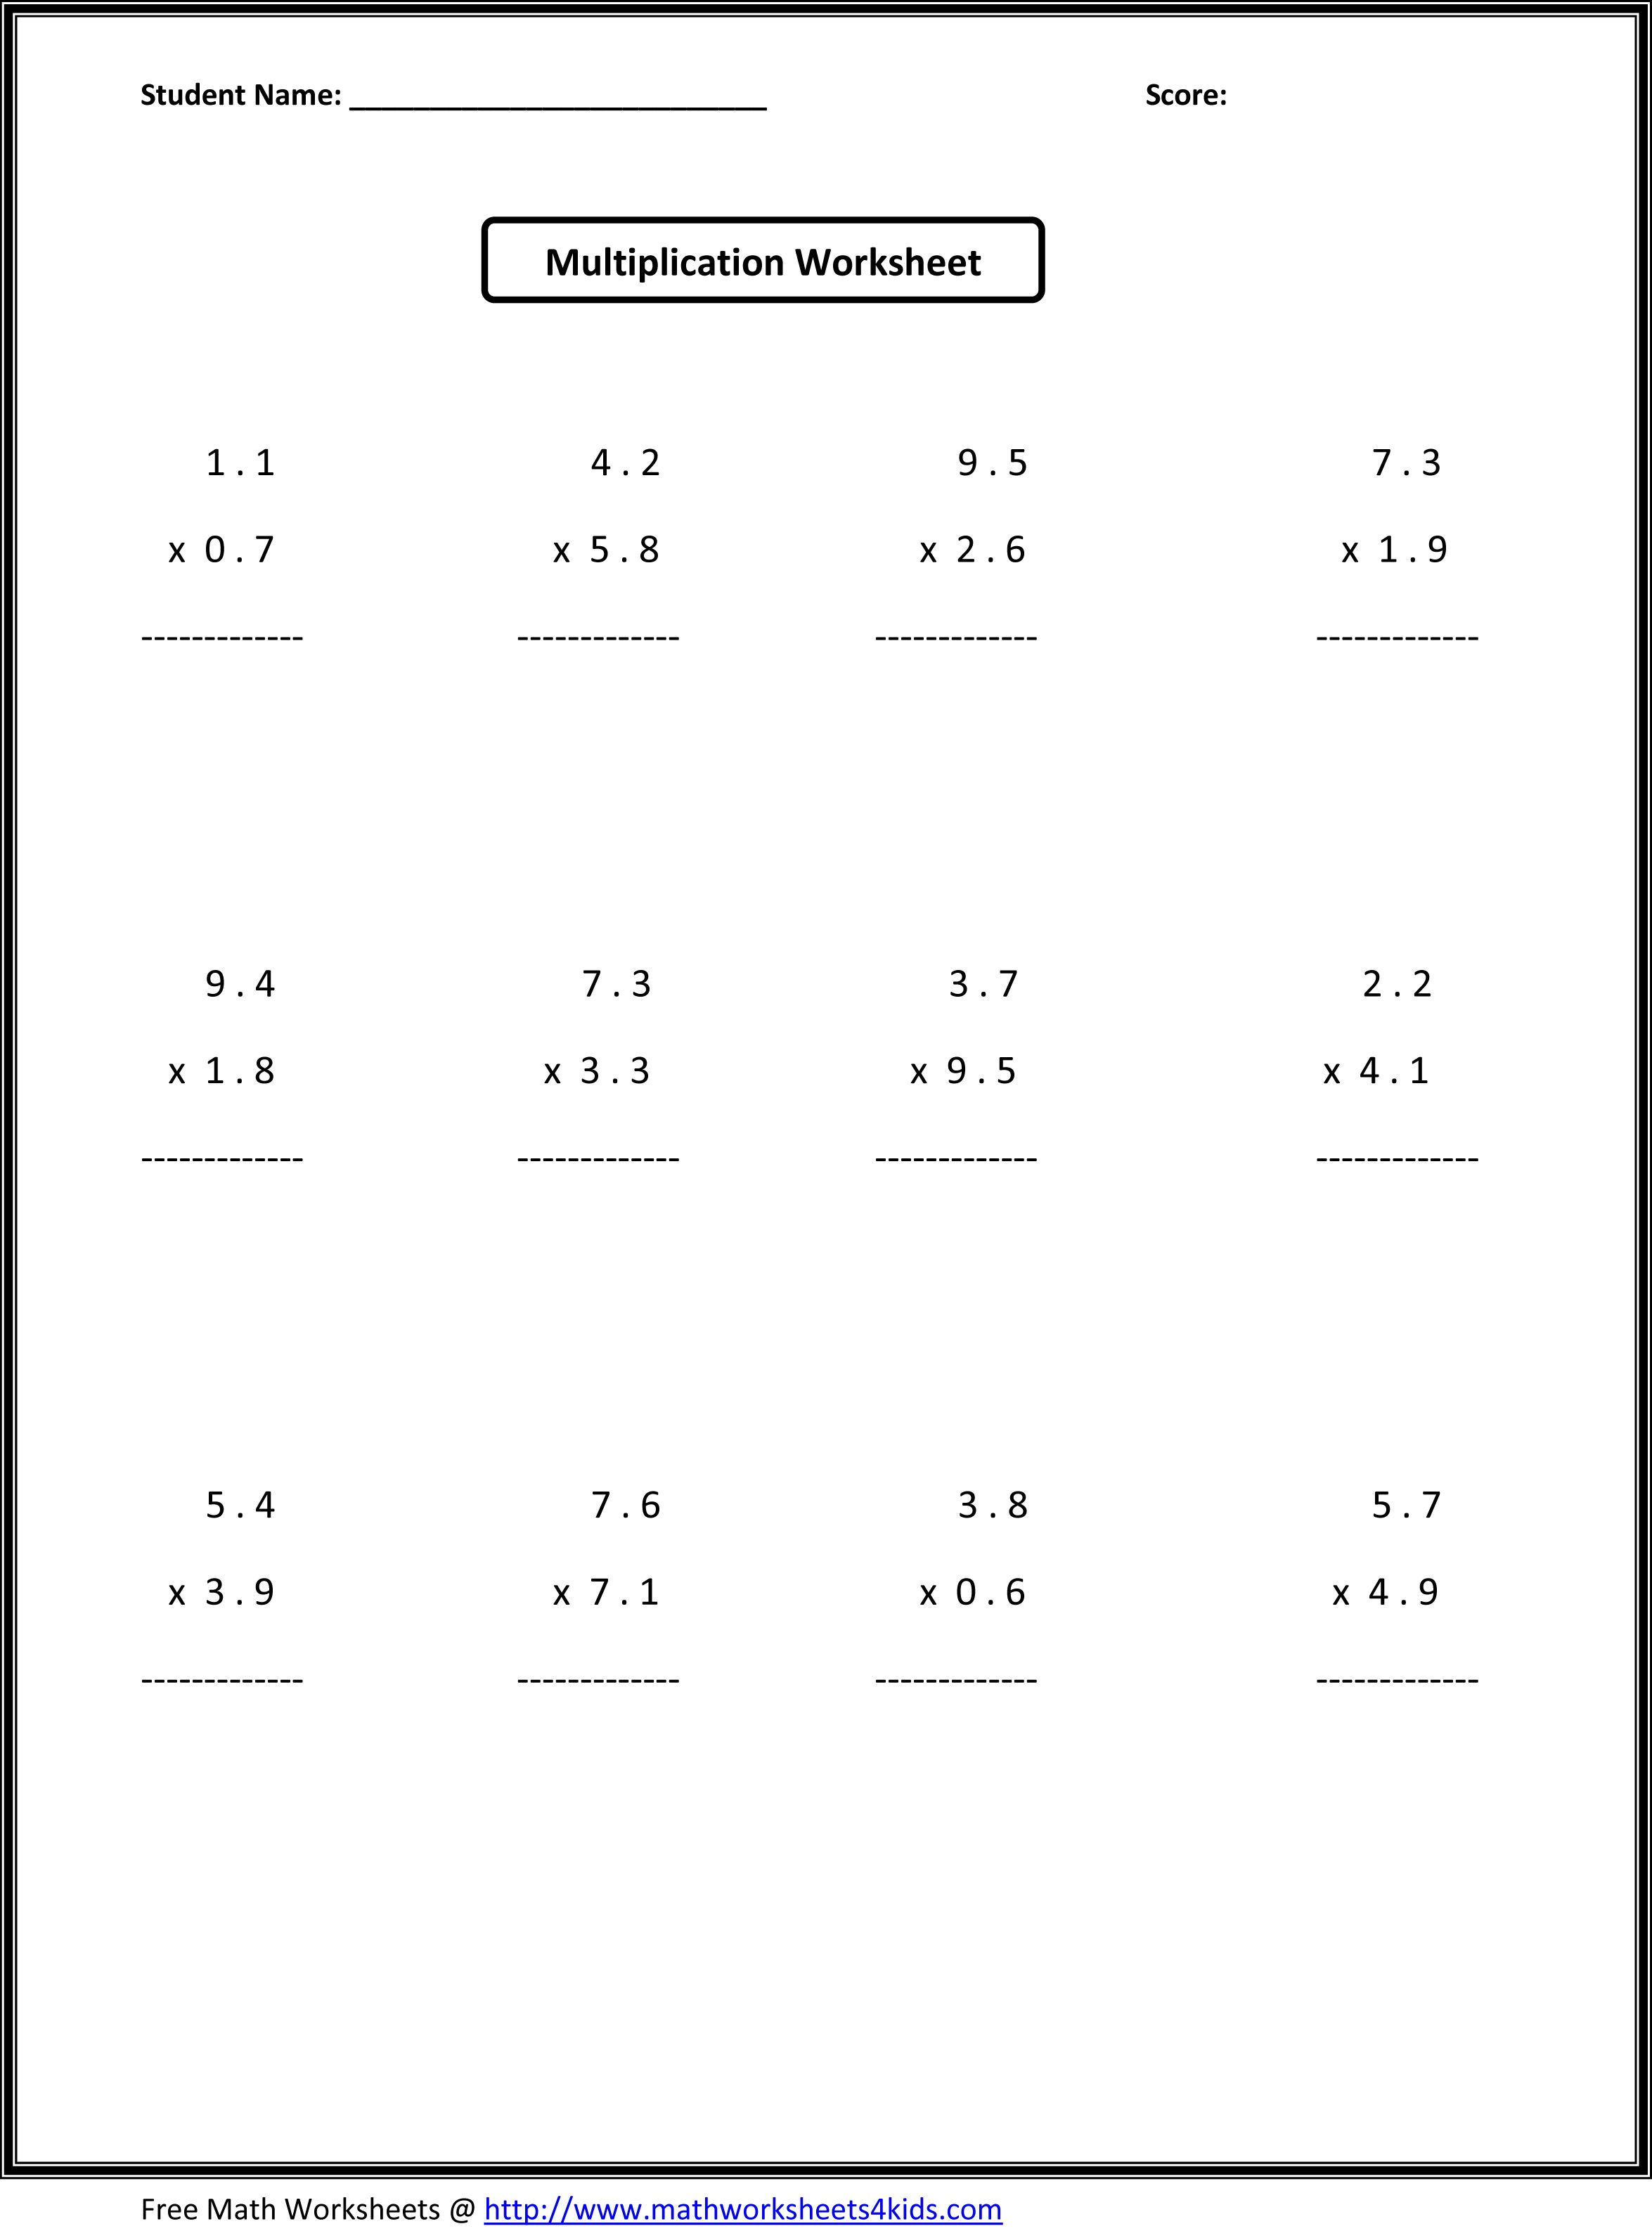 7th grade math worksheets – 7th Grade Maths Worksheets